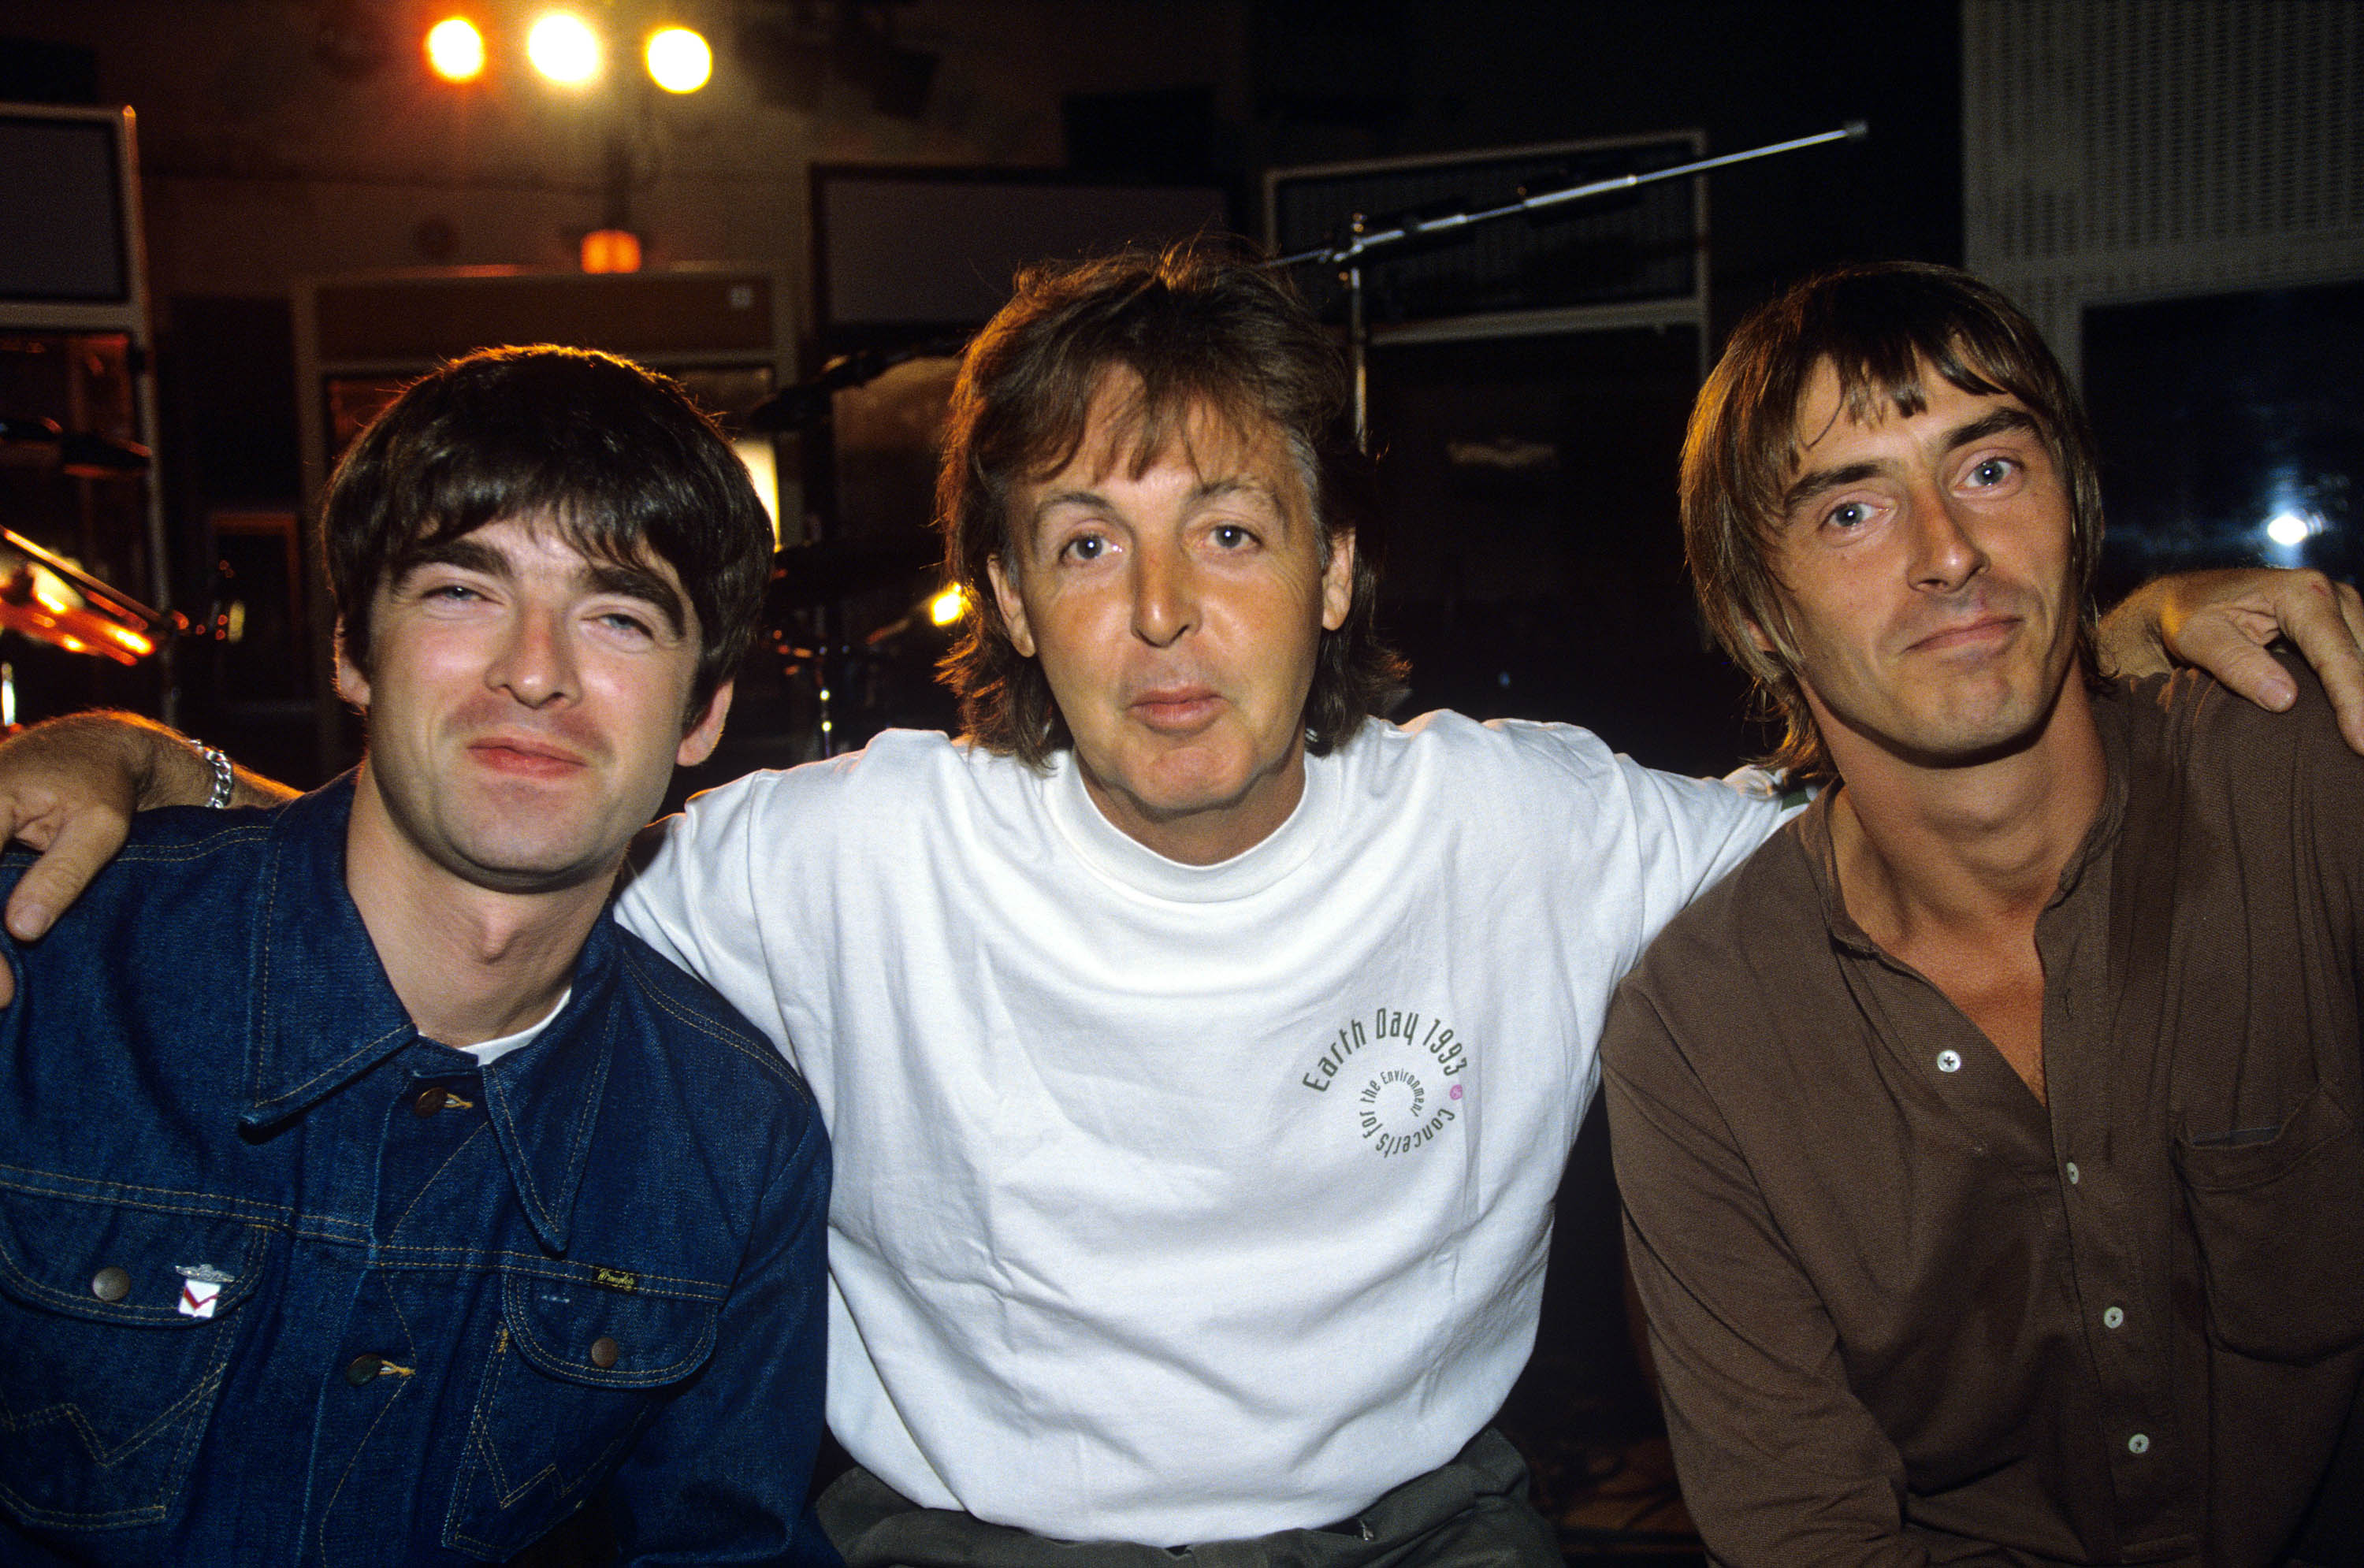 Noel Gallagher, Paul McCartney and Paul Weller